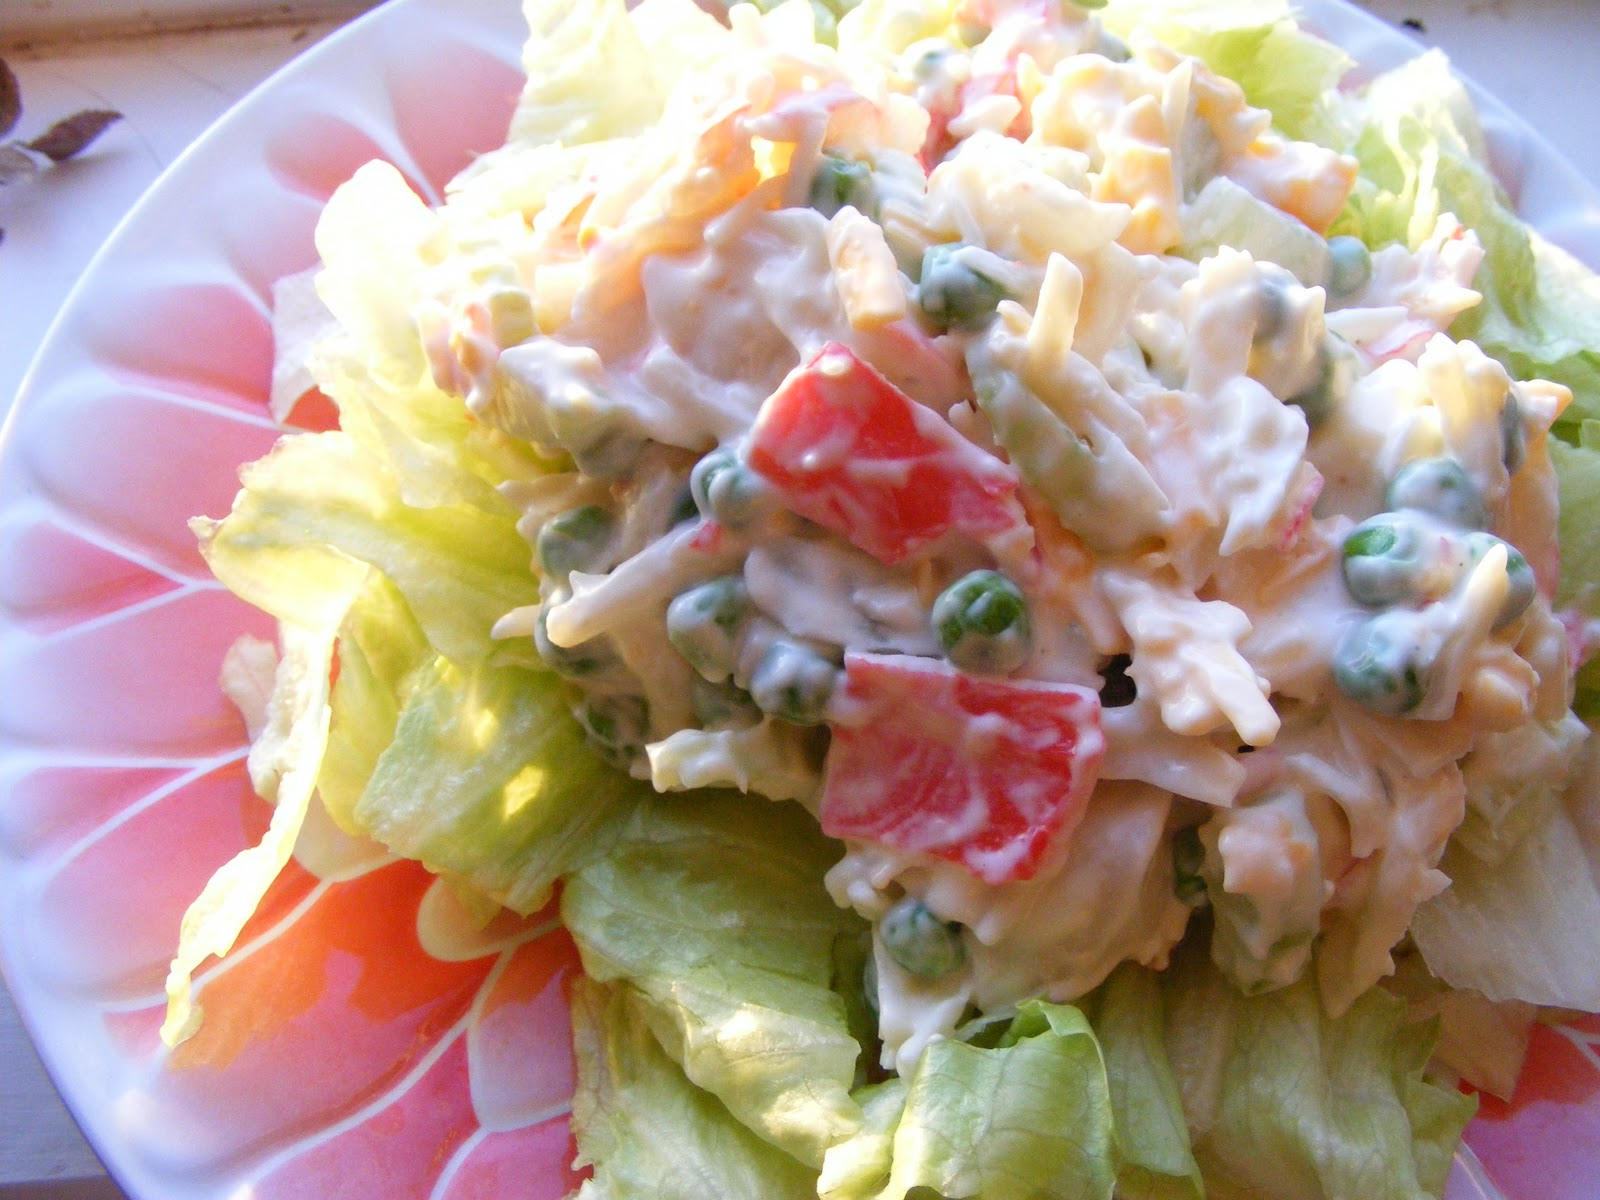 Vegetable Salad Diet Recipes